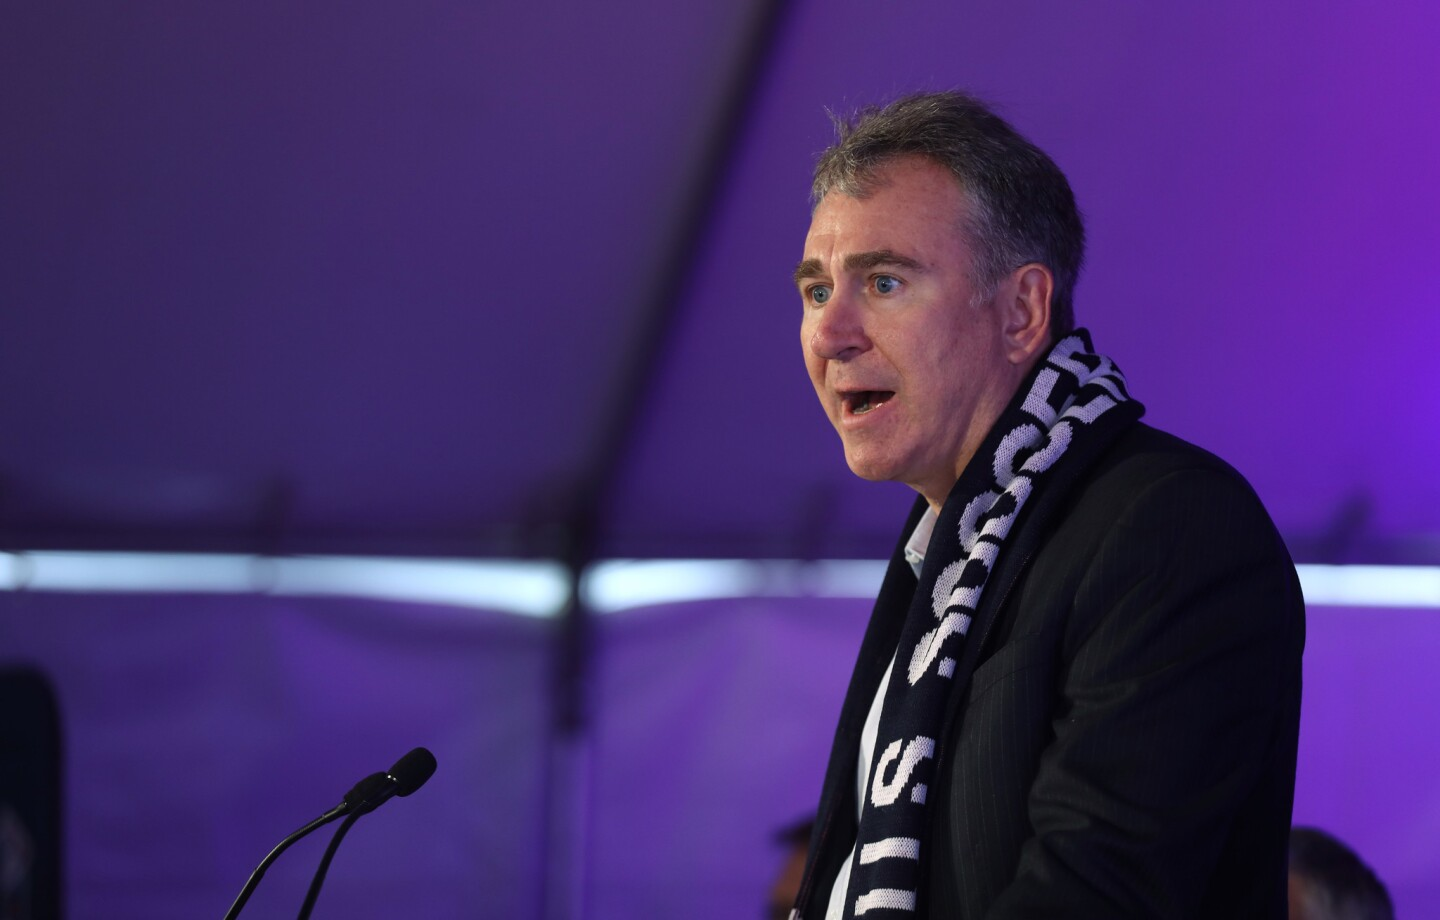 Citadel CEO Ken Griffin retains his spot as Illinois' richest person with a net worth of about $9.1 billion.